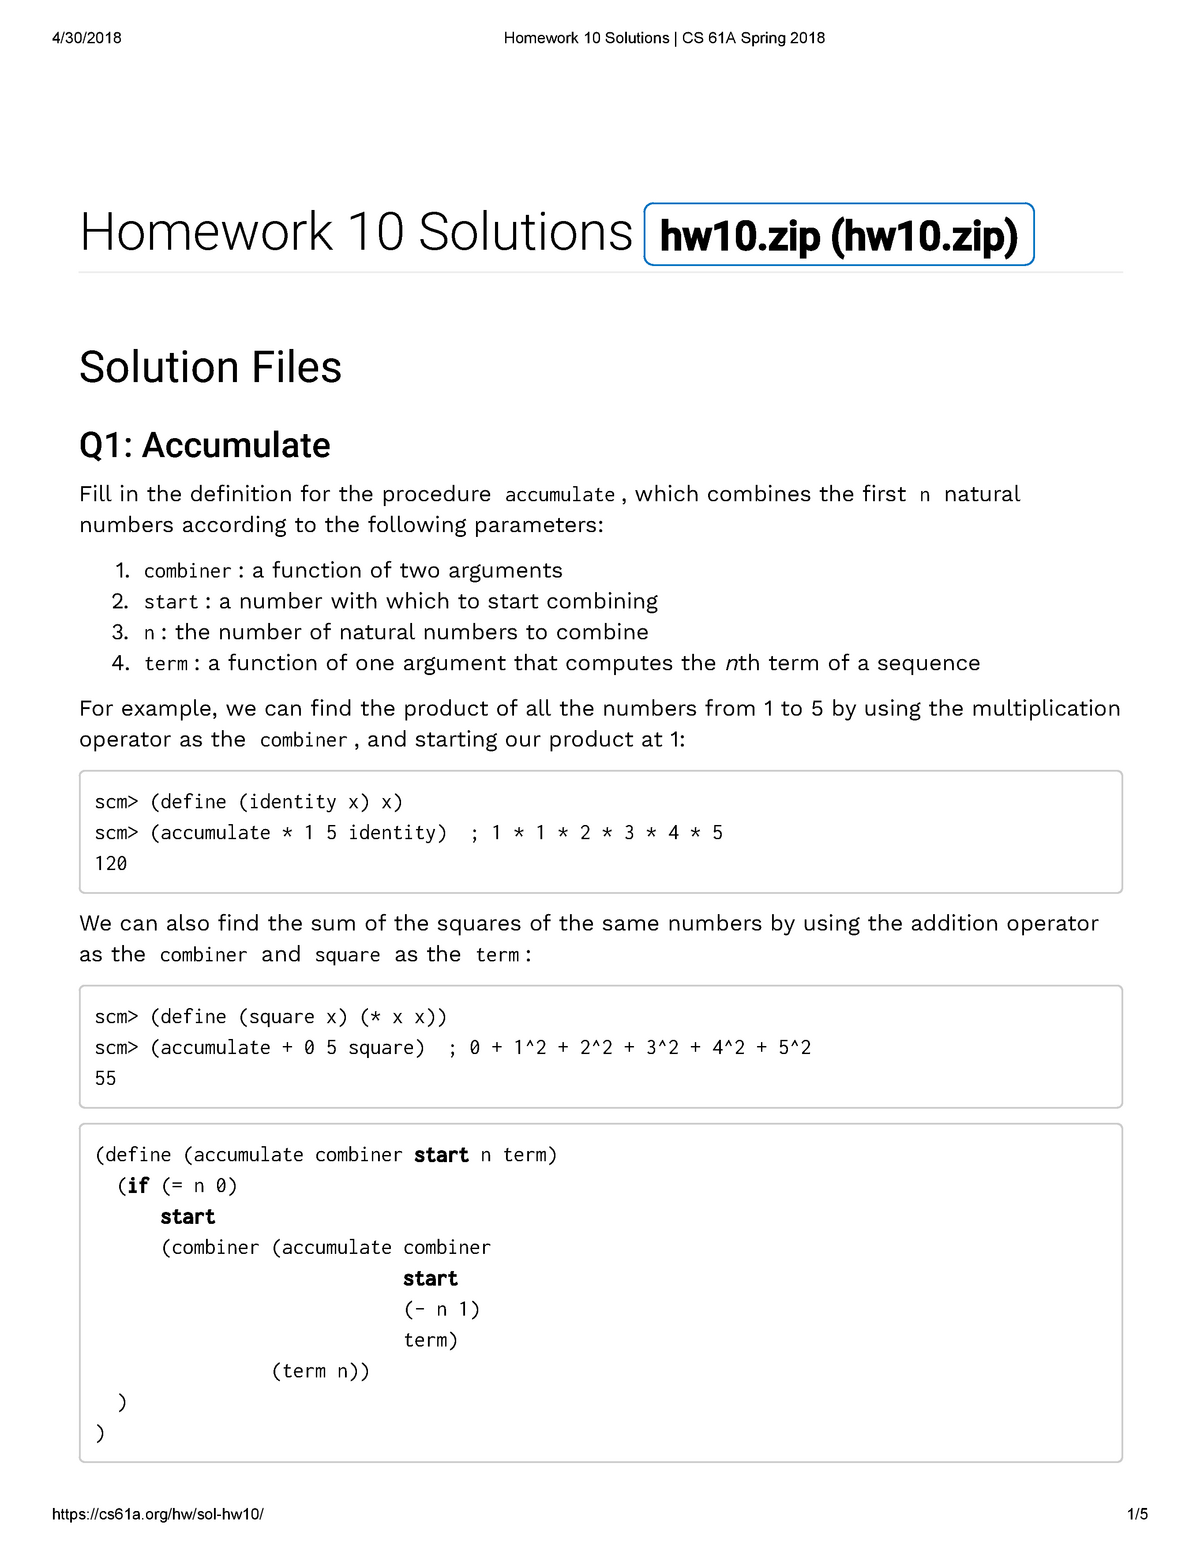 cs61a homework solutions